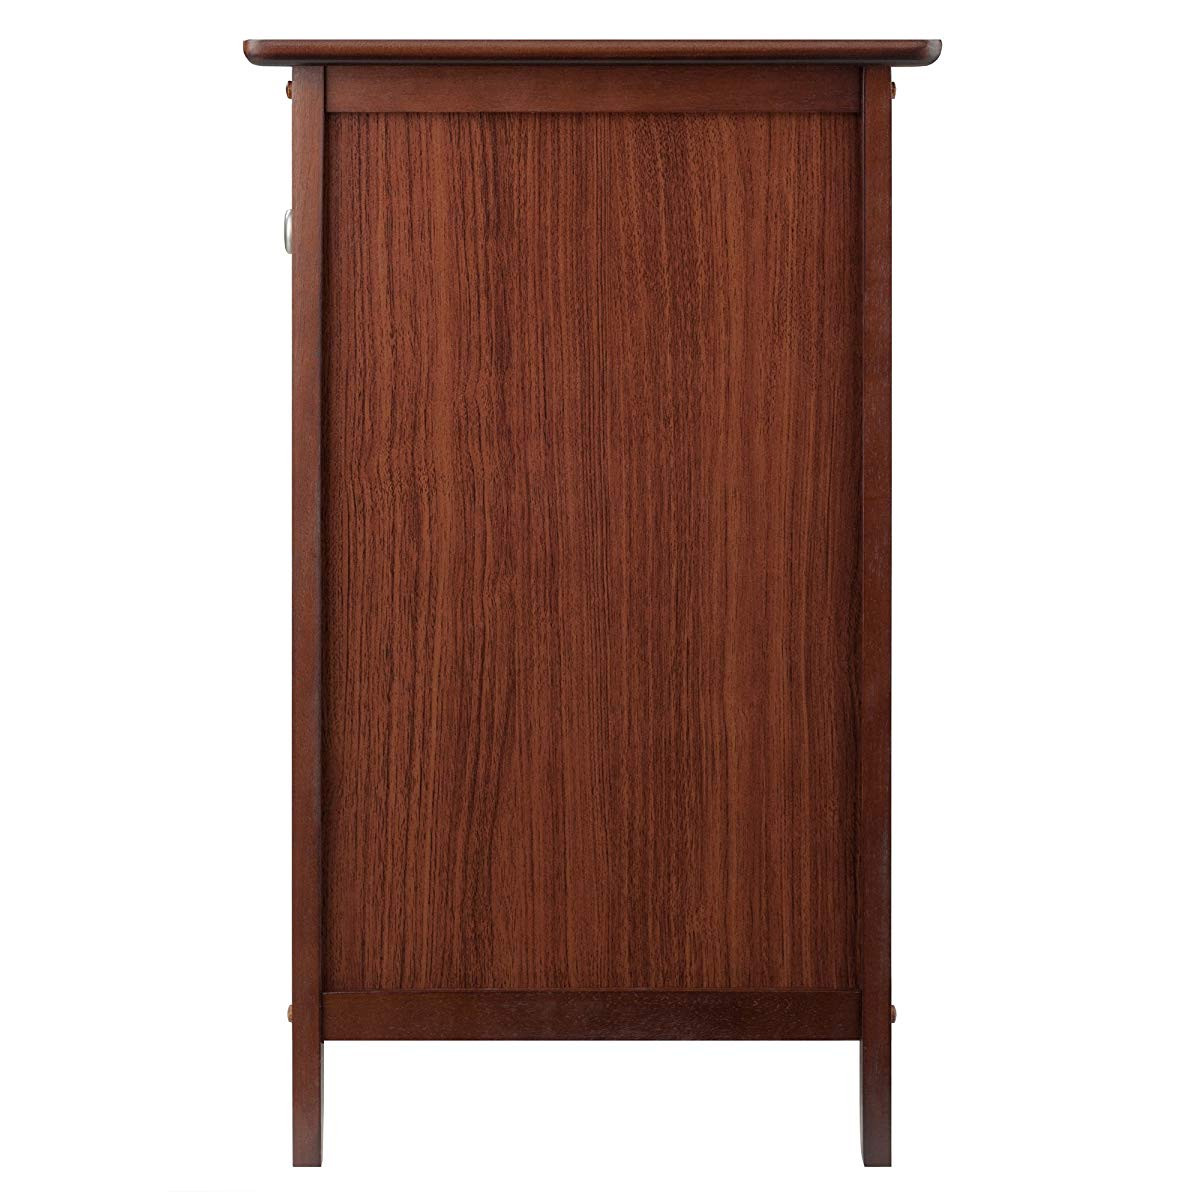 winsome wood end table with drawer and shelf black styling wonderful night stand accent timber one inspirational hairpin dining wine rack kitchen coffee glass white brown leather